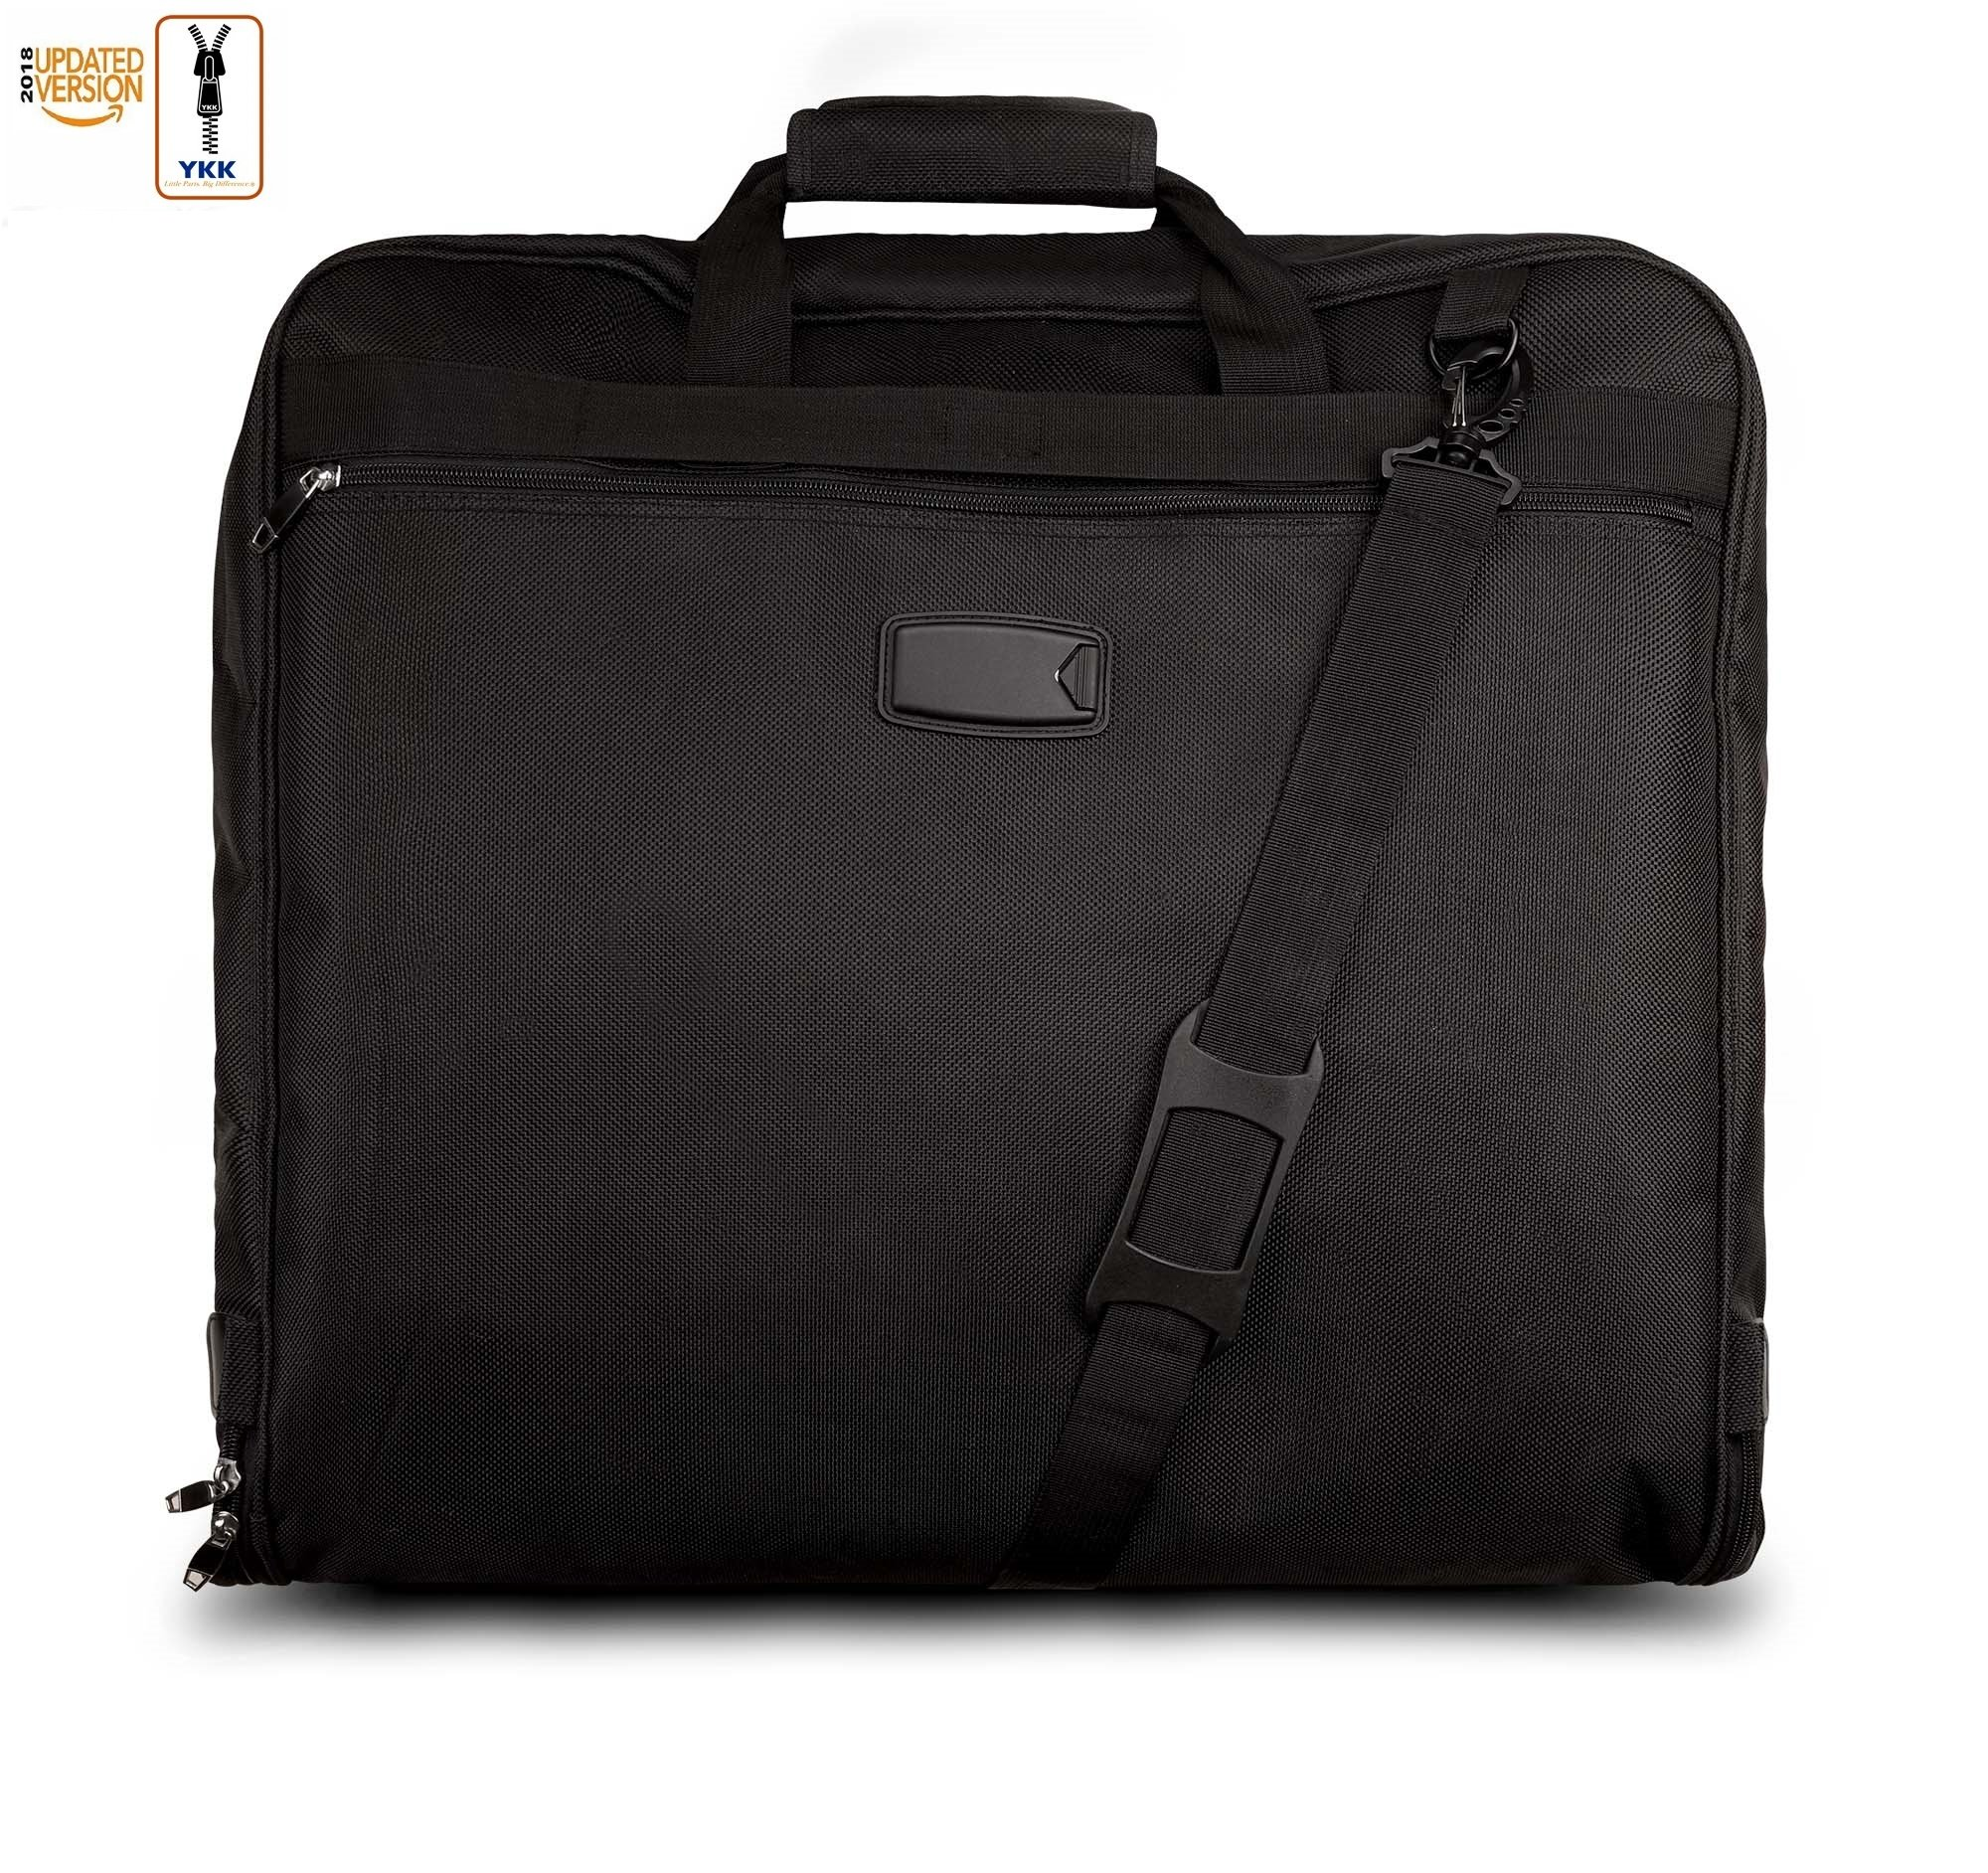 3 Suit Carry On Garment Bag for Travel & Business Trips With Shoulder Strap 40'' Bagazzi Brand by Bagazzi (Image #8)